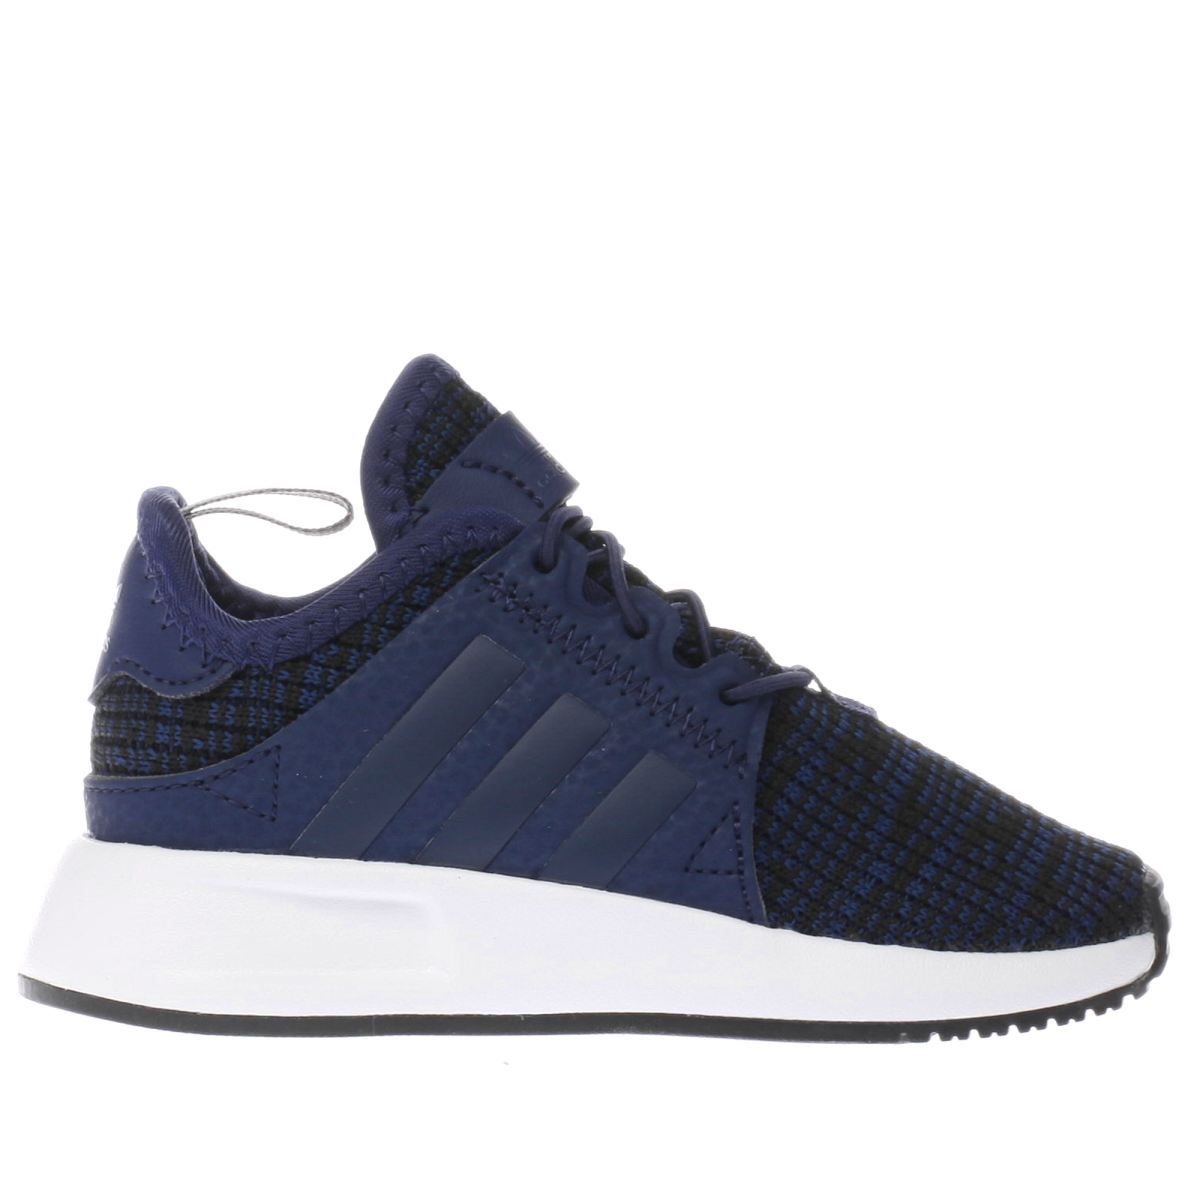 adidas navy x_plr Boys Toddler Toddler